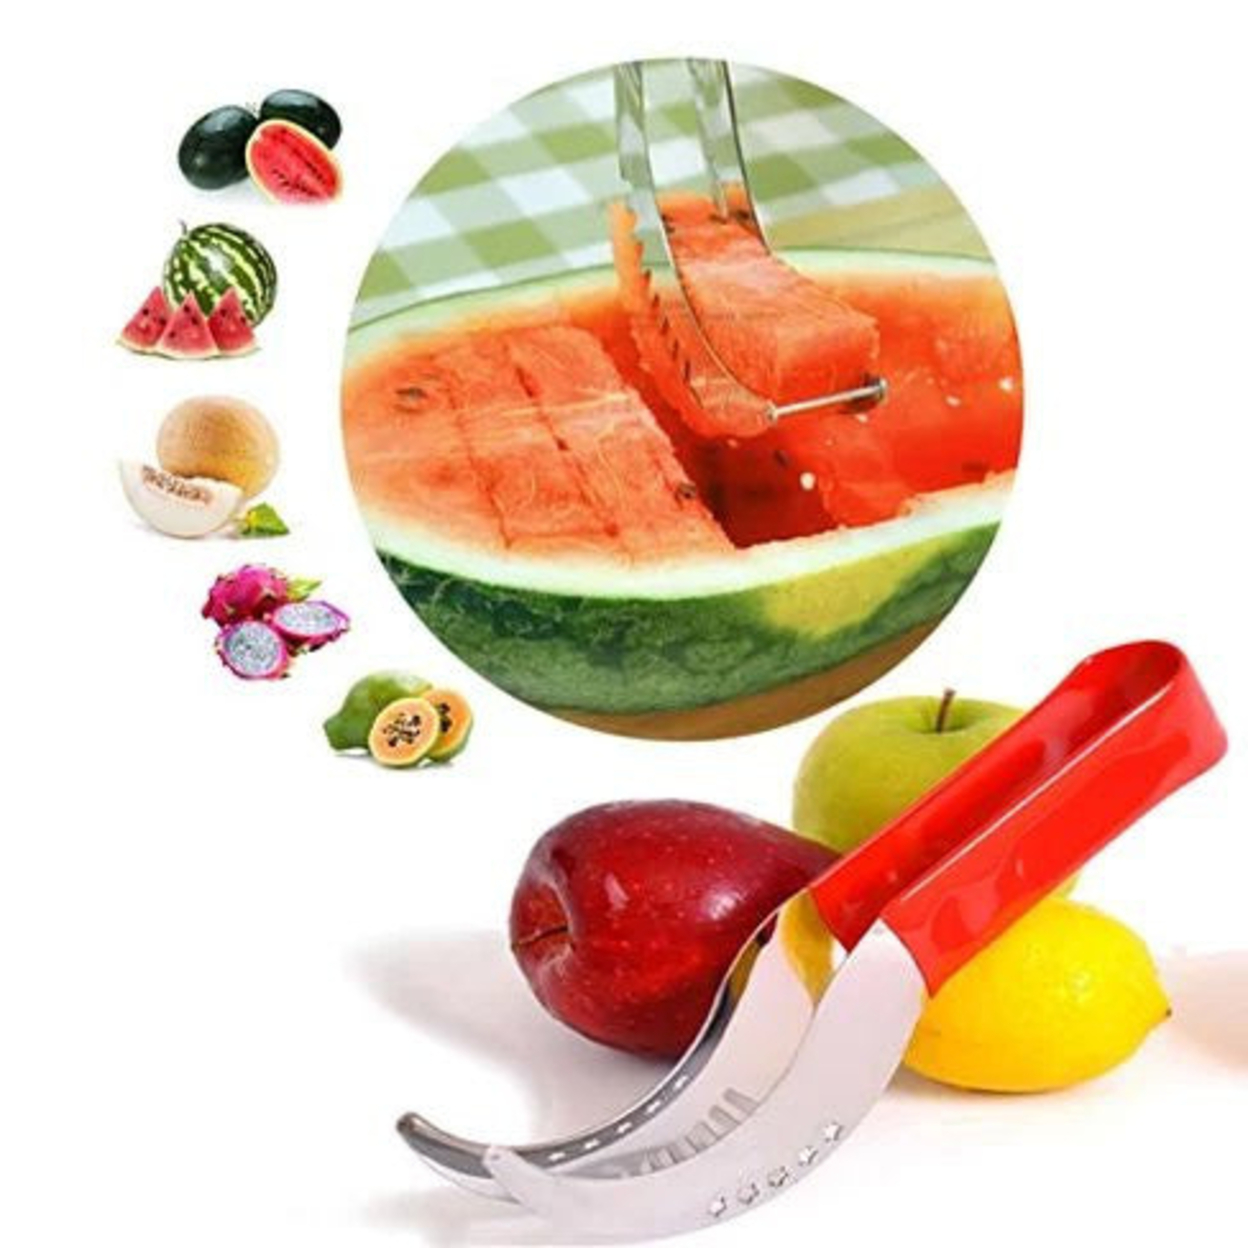 Wowzy Red And All Steel Watermelon Any Melon Slicer And Cake Cutter WowzyAll Steel